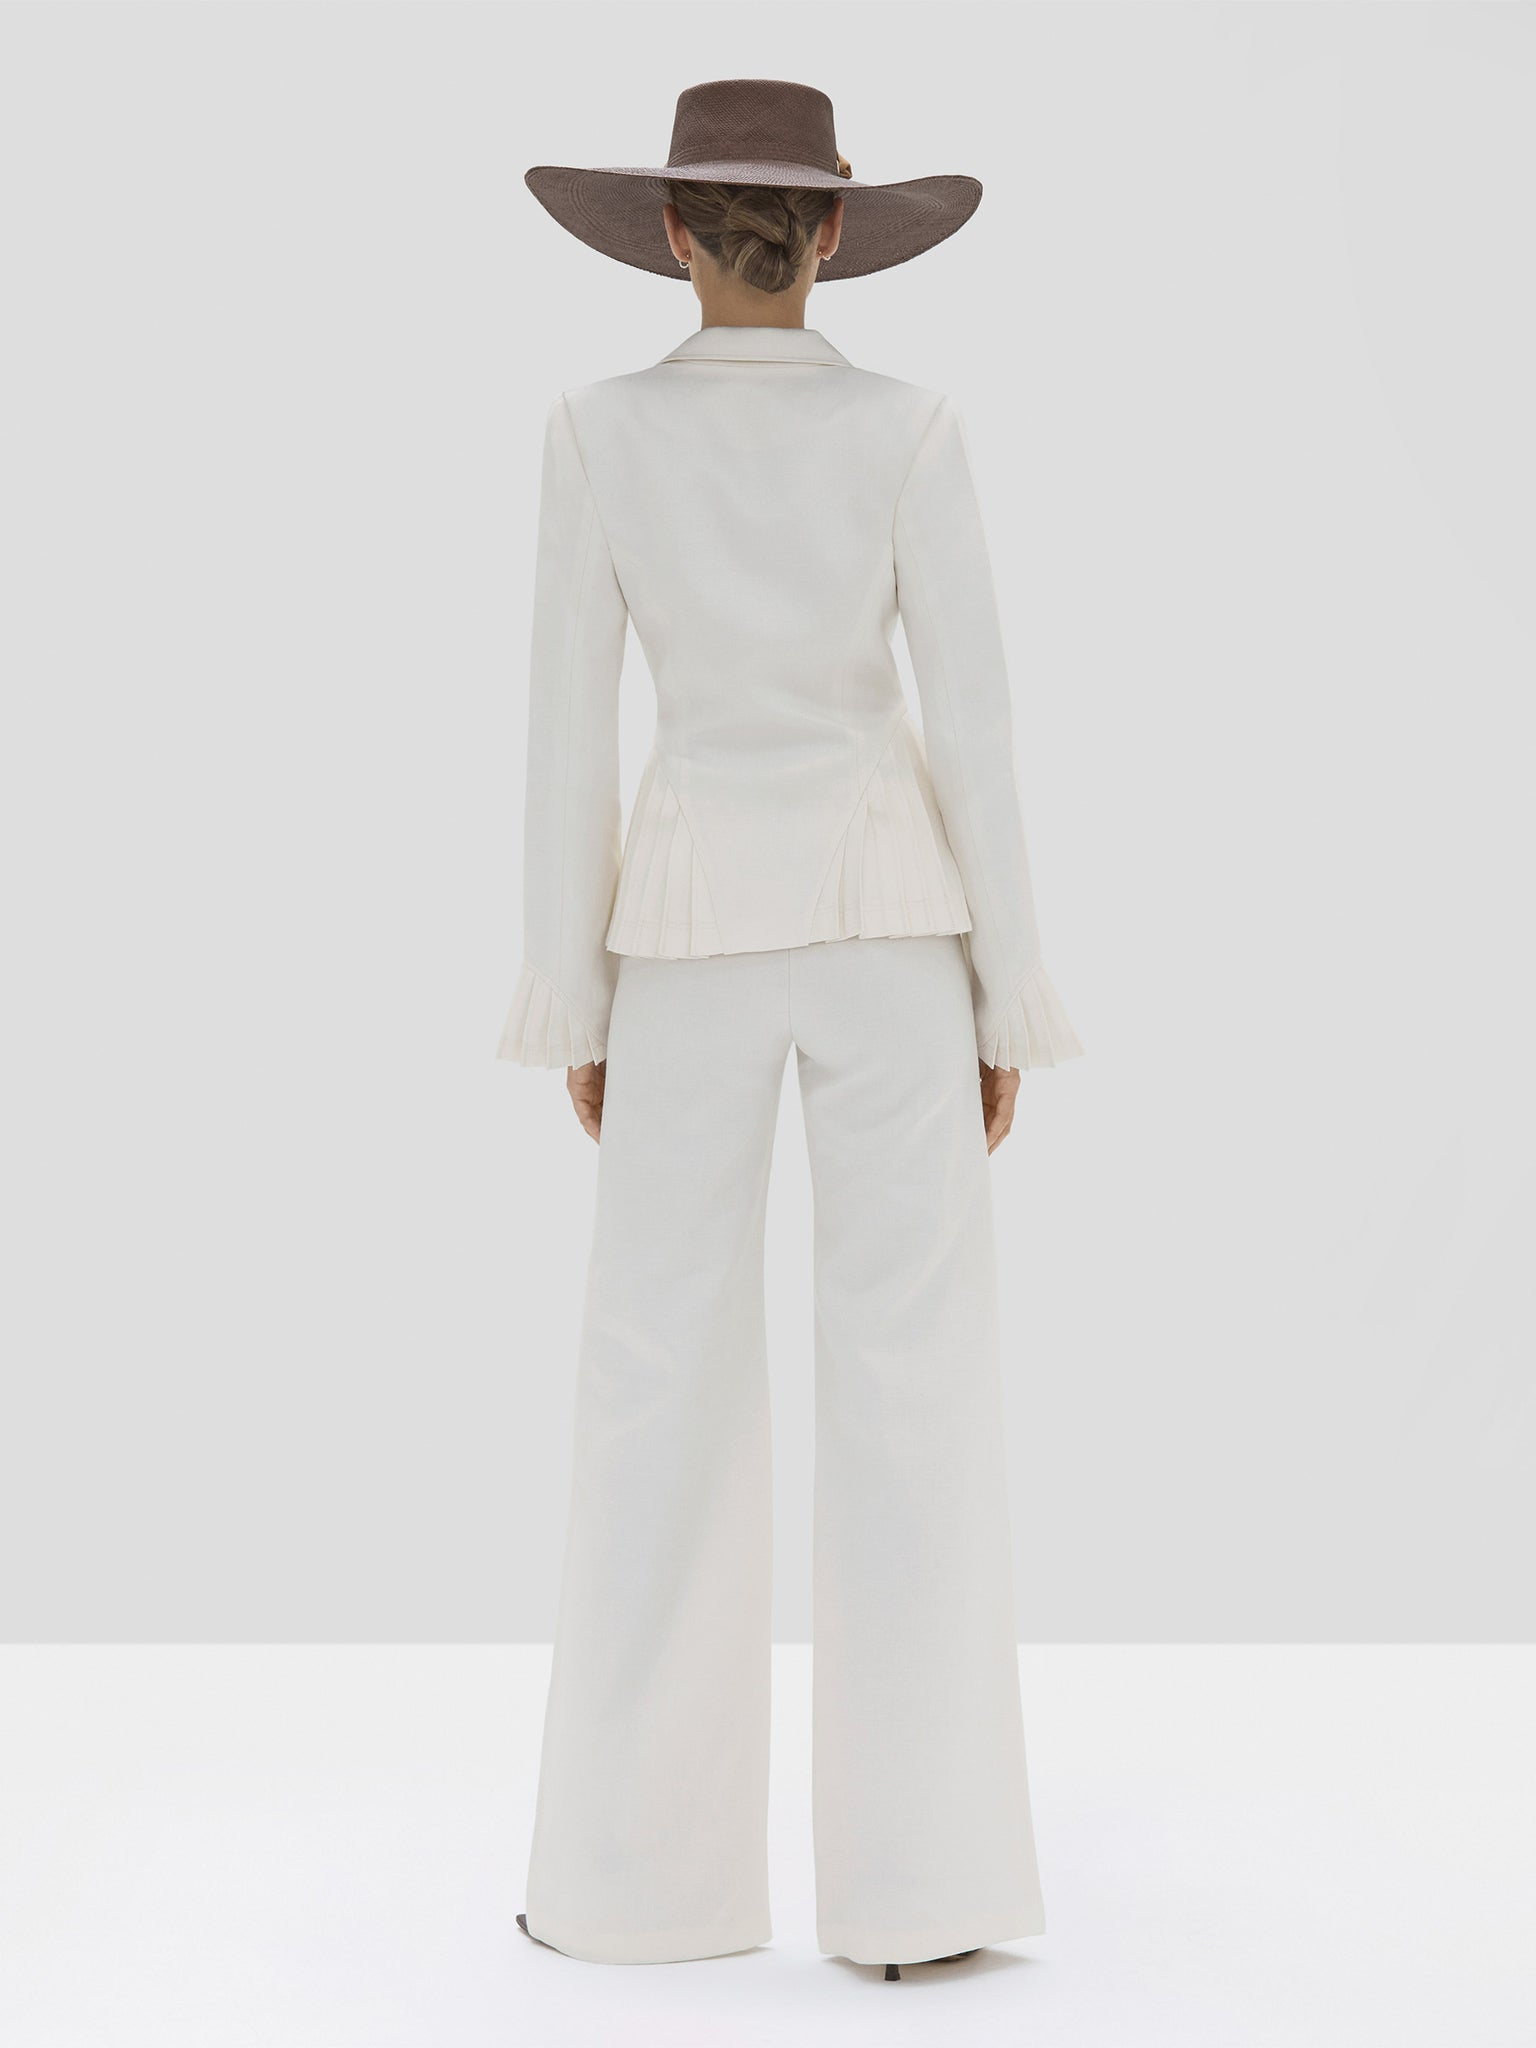 The Govanni Jacket in Off White from the Spring Summer 2020 - Rear View